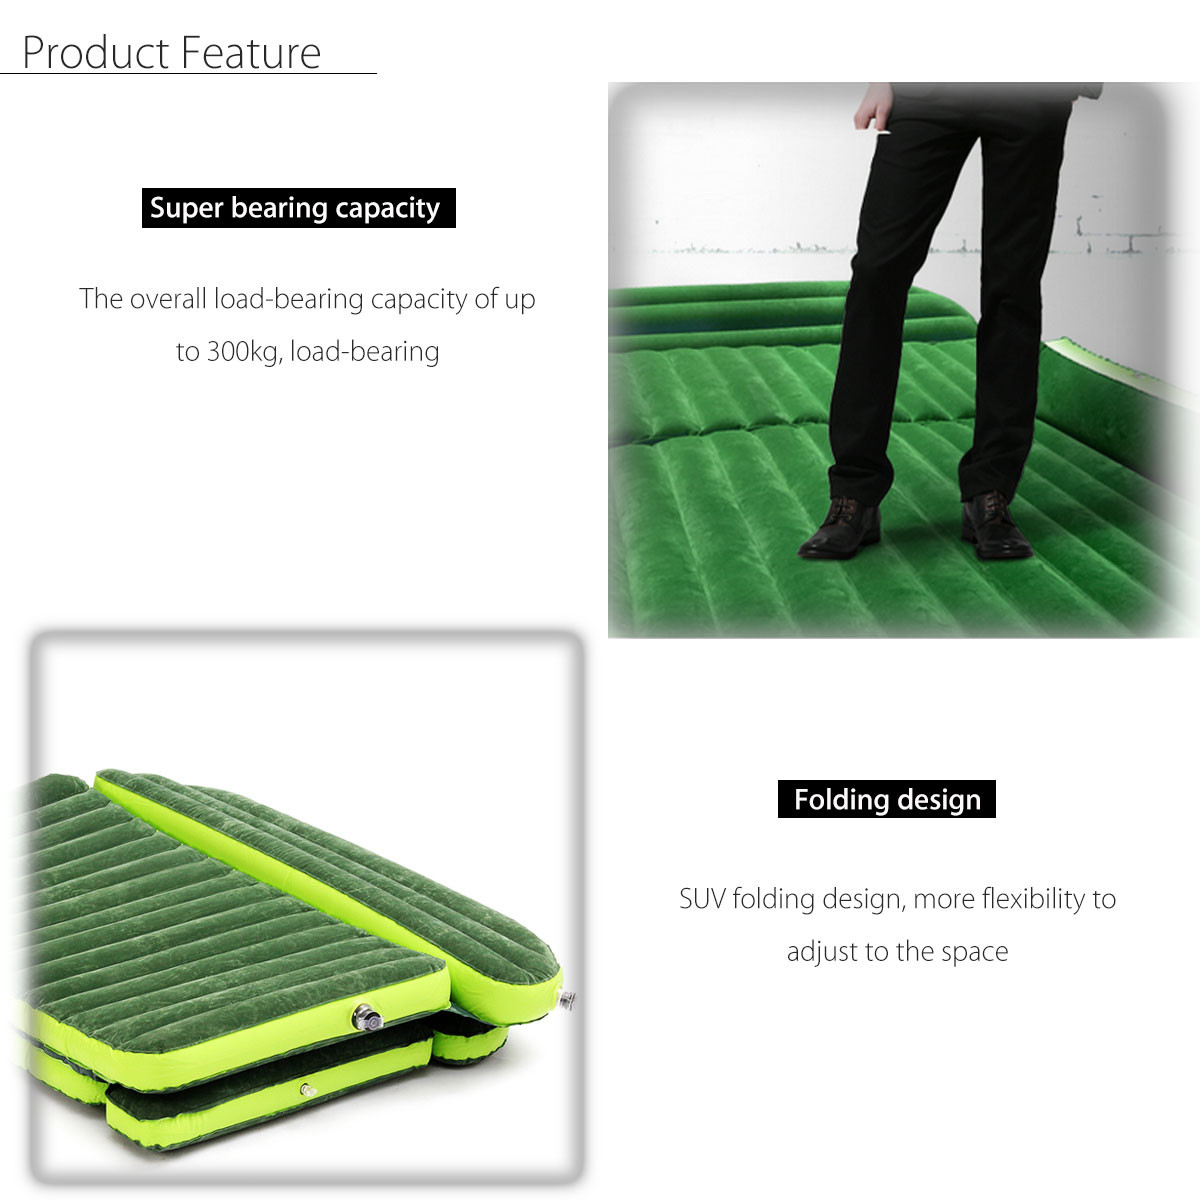 6x4 Ft SUV/Car Inflatable Mattress with Electric Pump 2